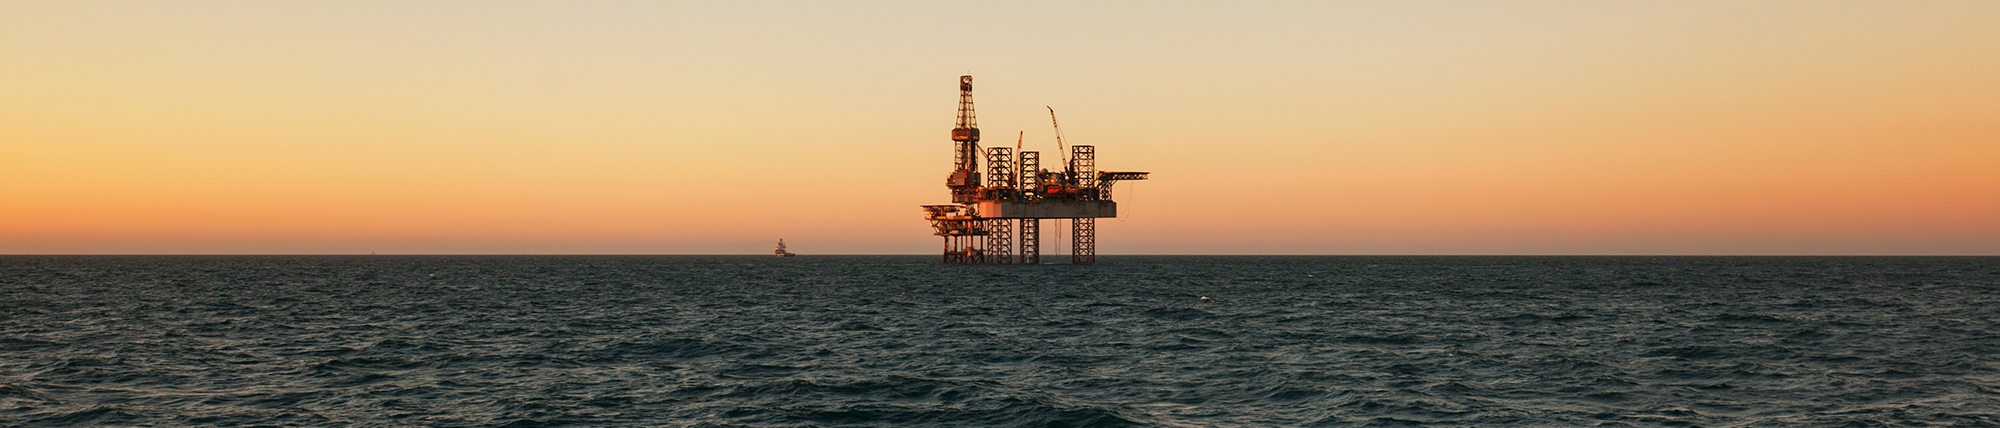 Offshore Image banner  2